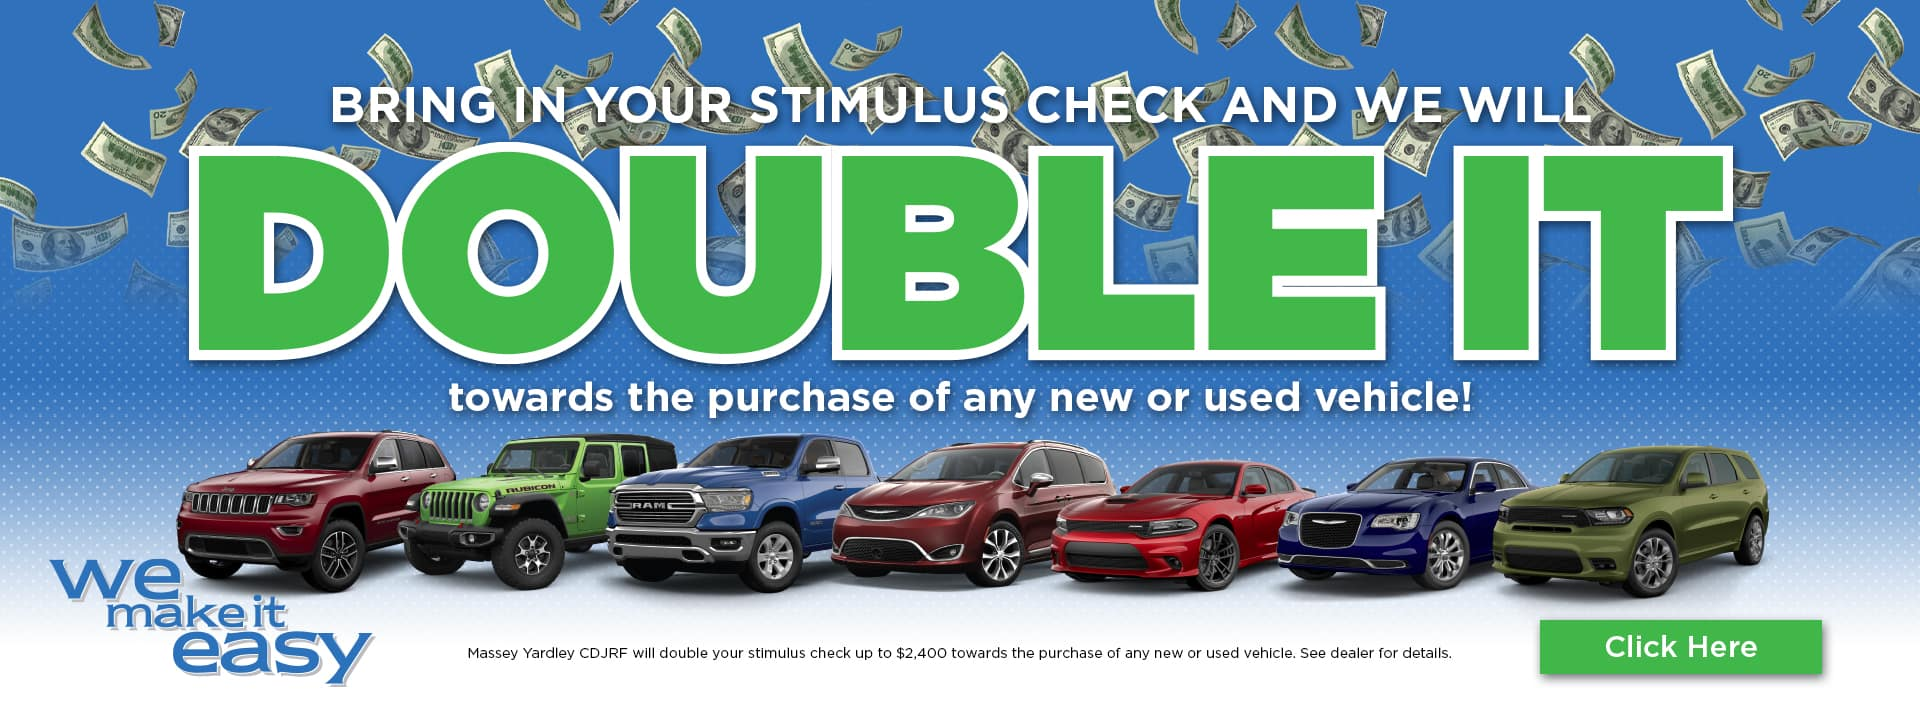 bring in your stimulus check and we will double it towards the purchase of any new or used vehicle